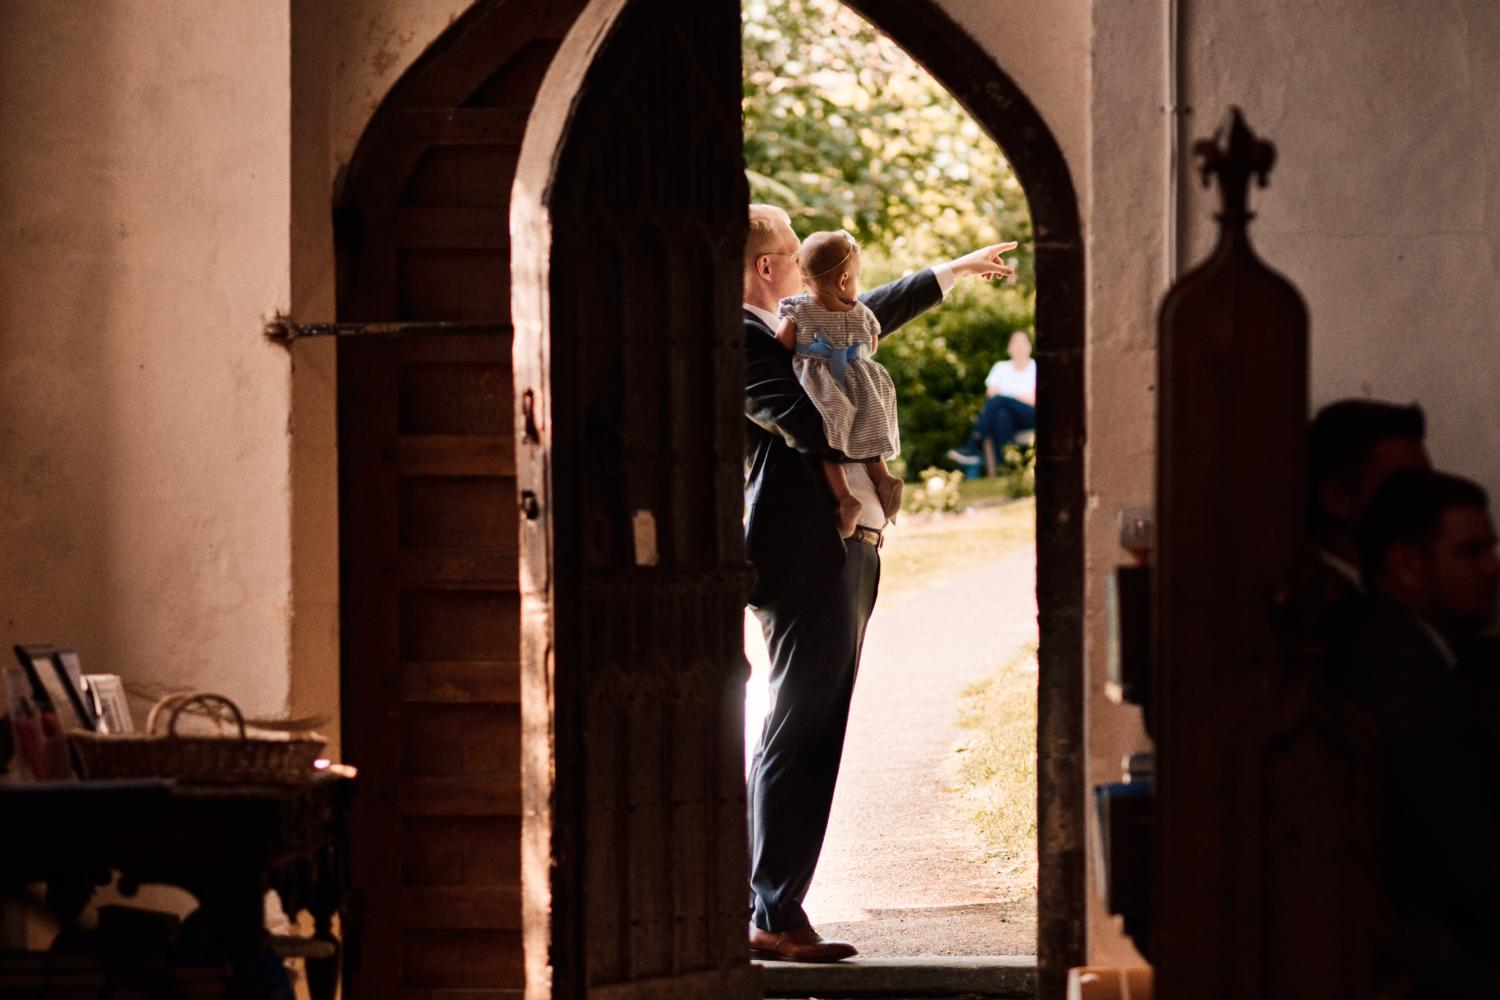 A father points to something outside a church